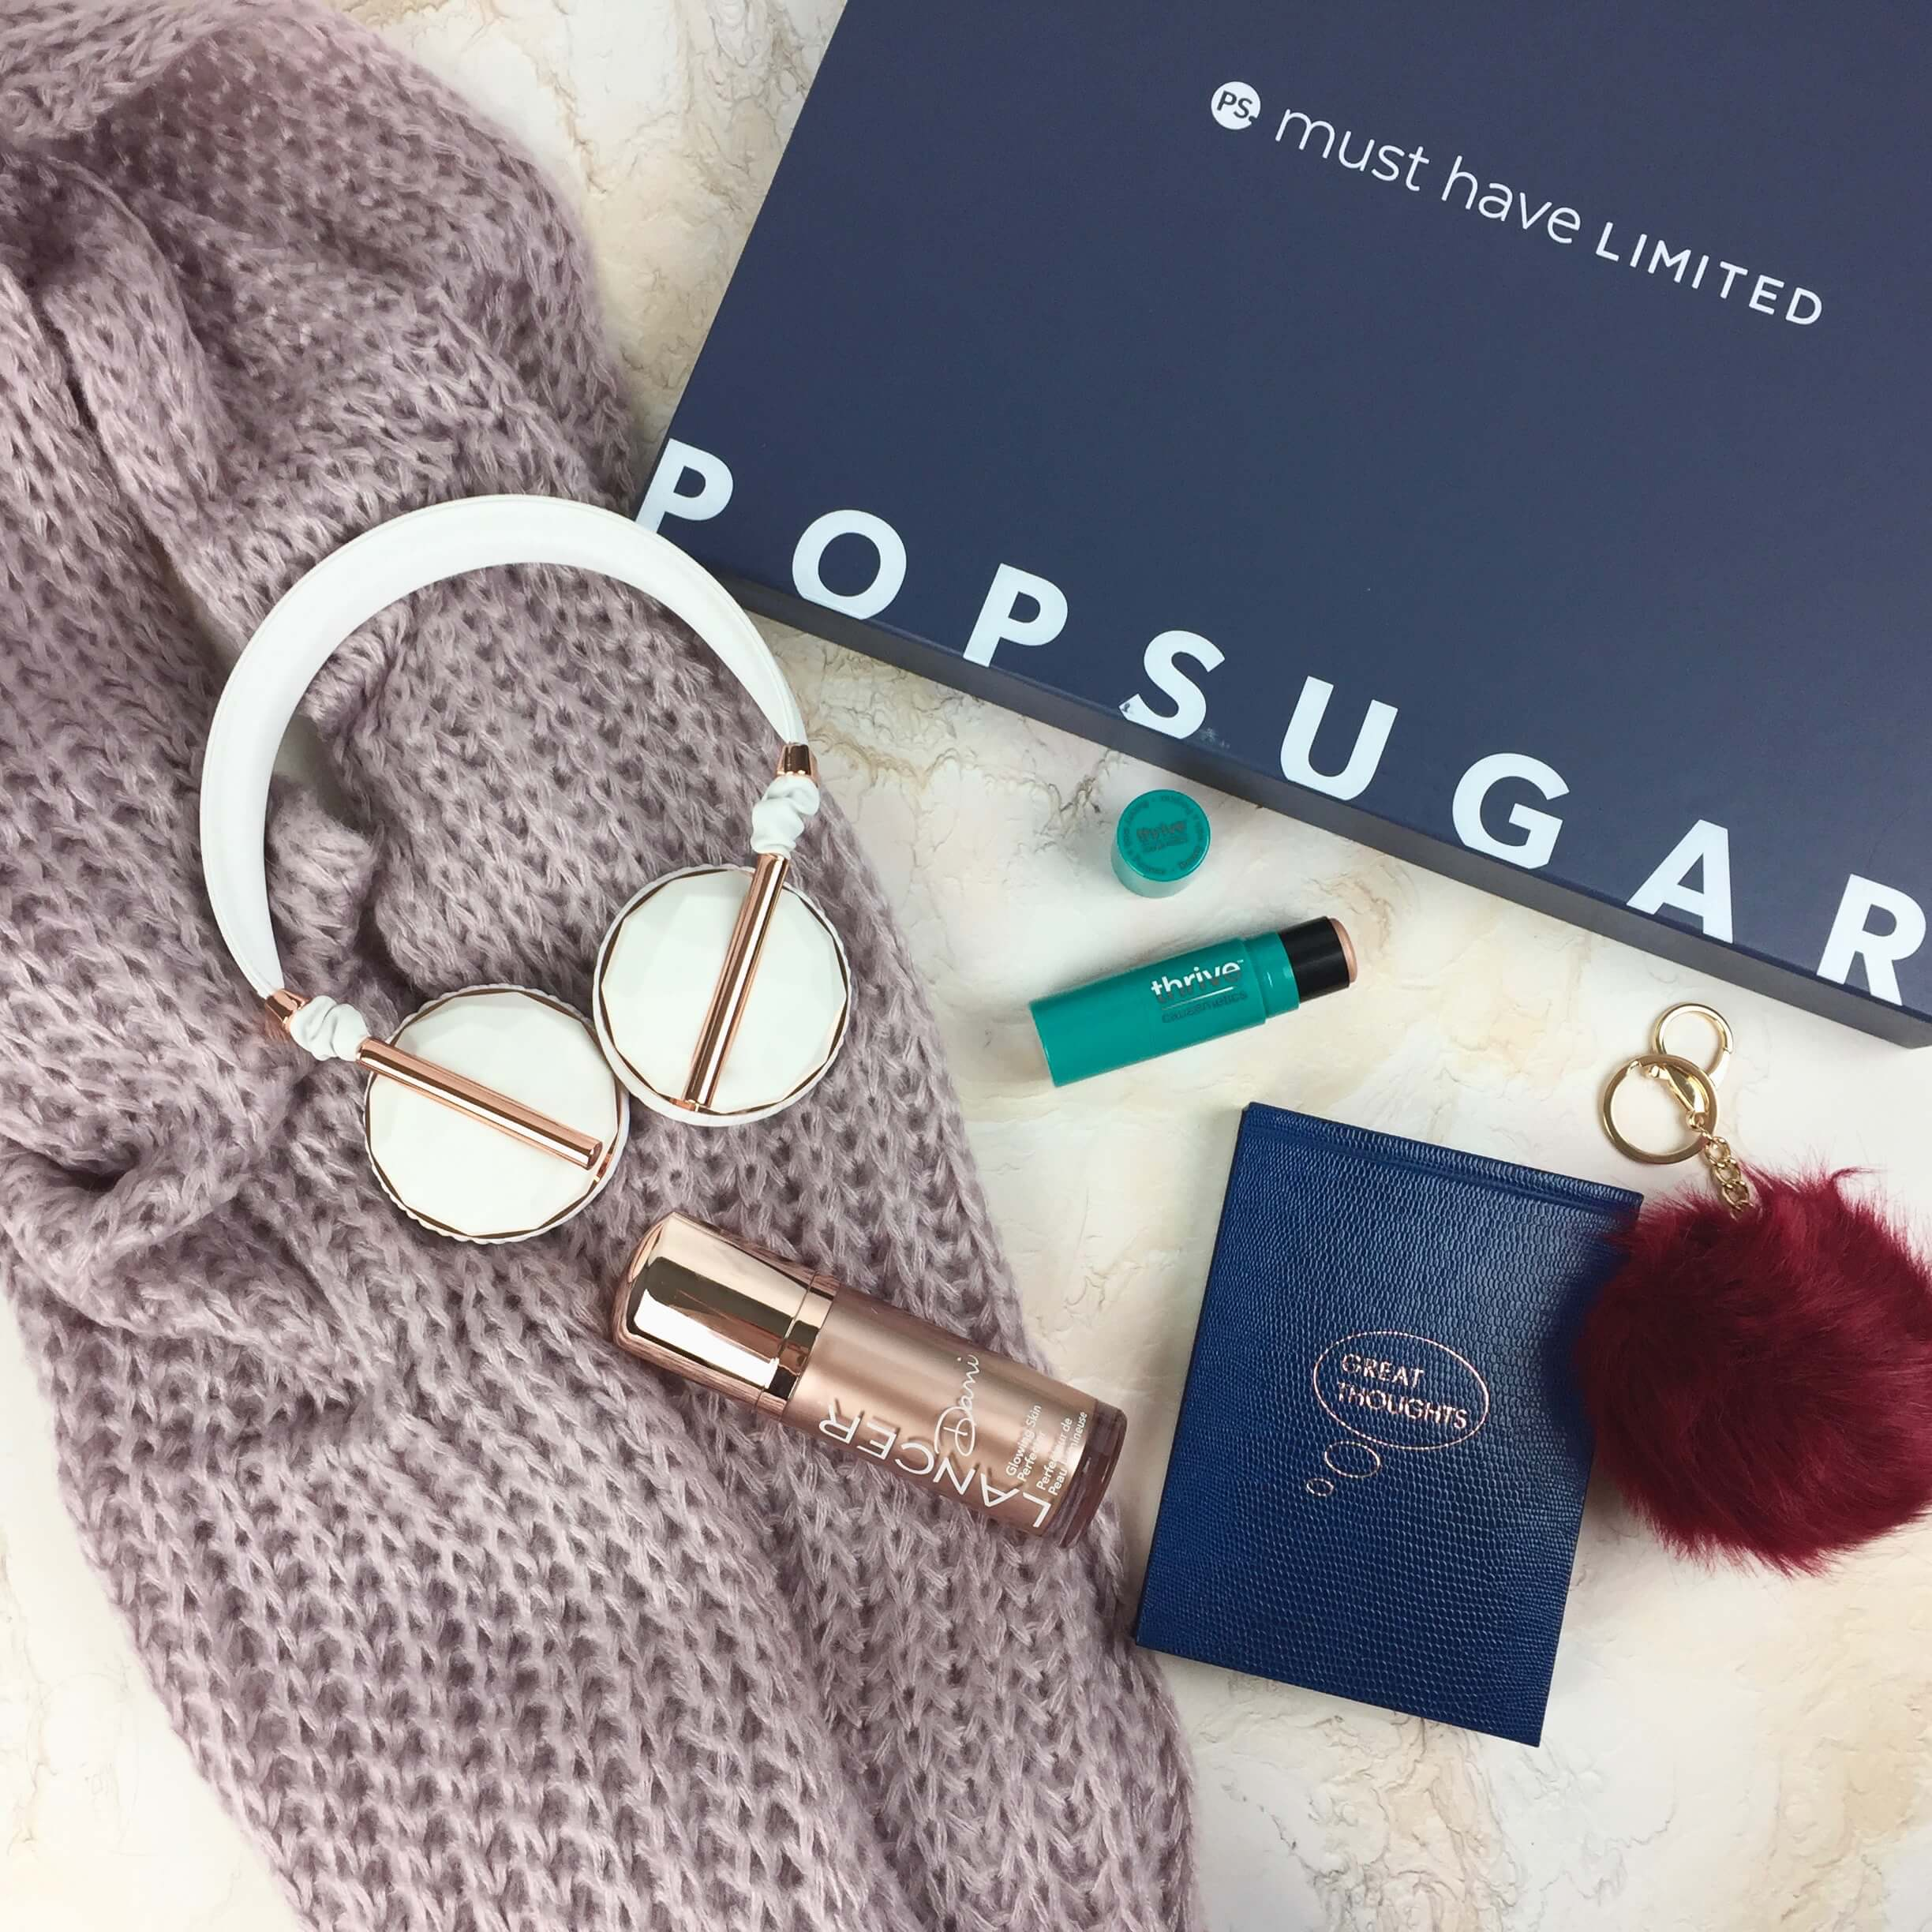 Popsugar Must Have Fall 2016 Limited Edition Box Review